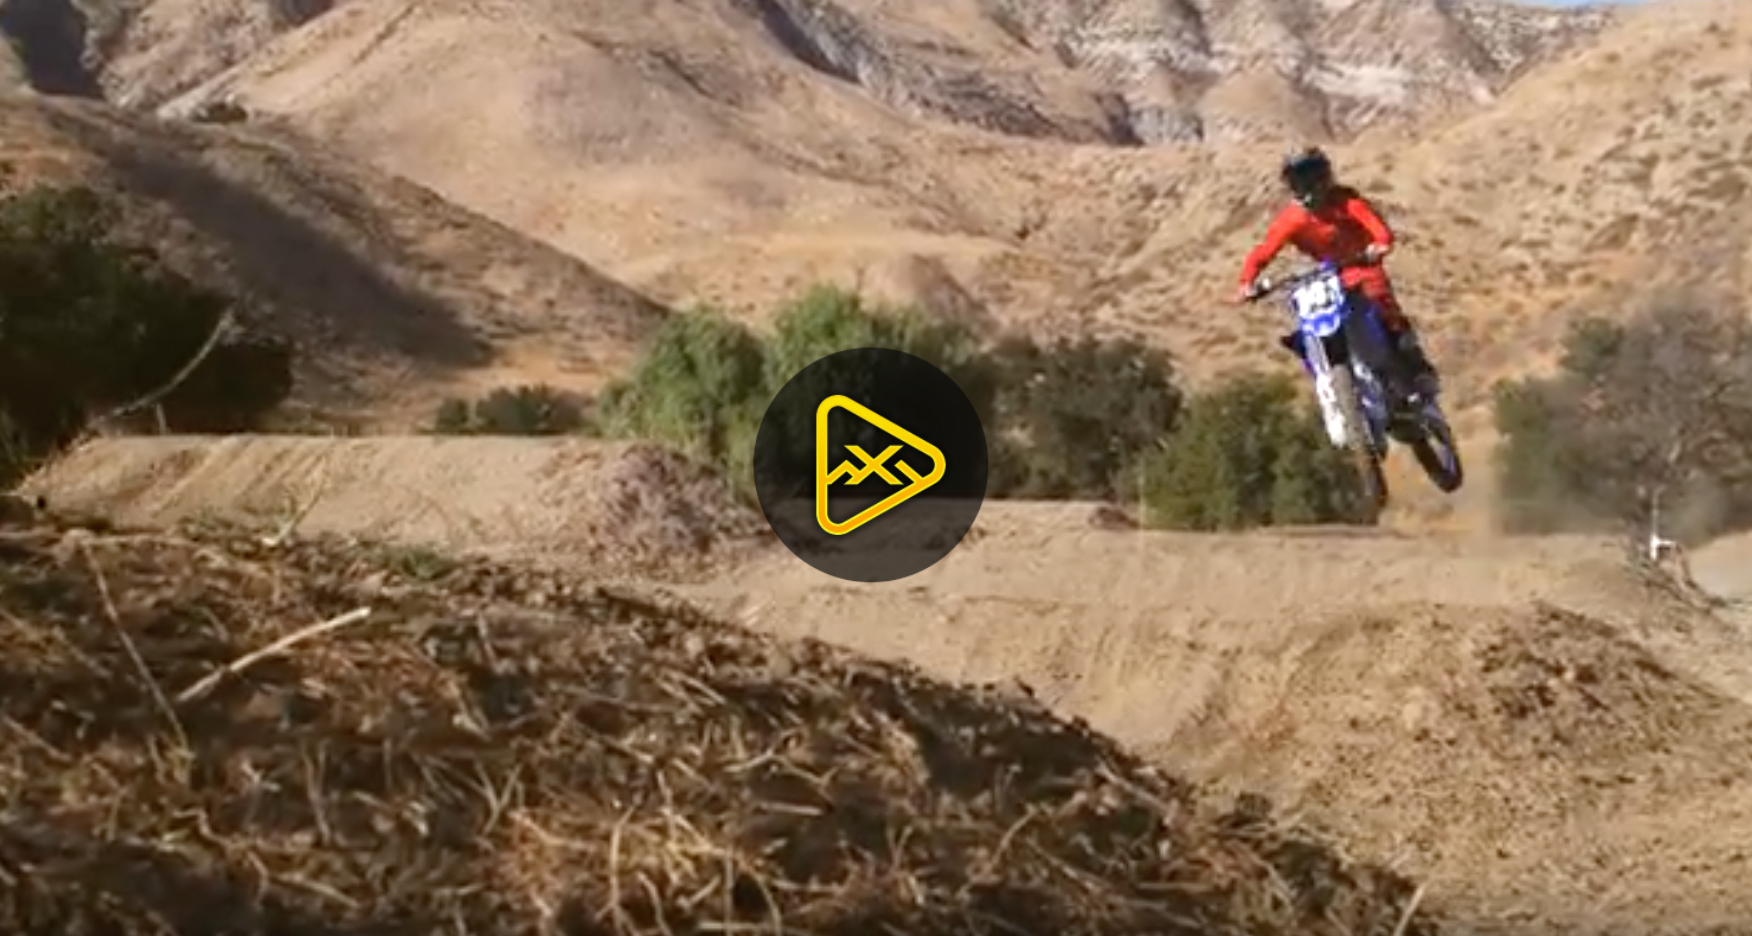 YZ125 2-Stroke Supercross with Robbie Wageman